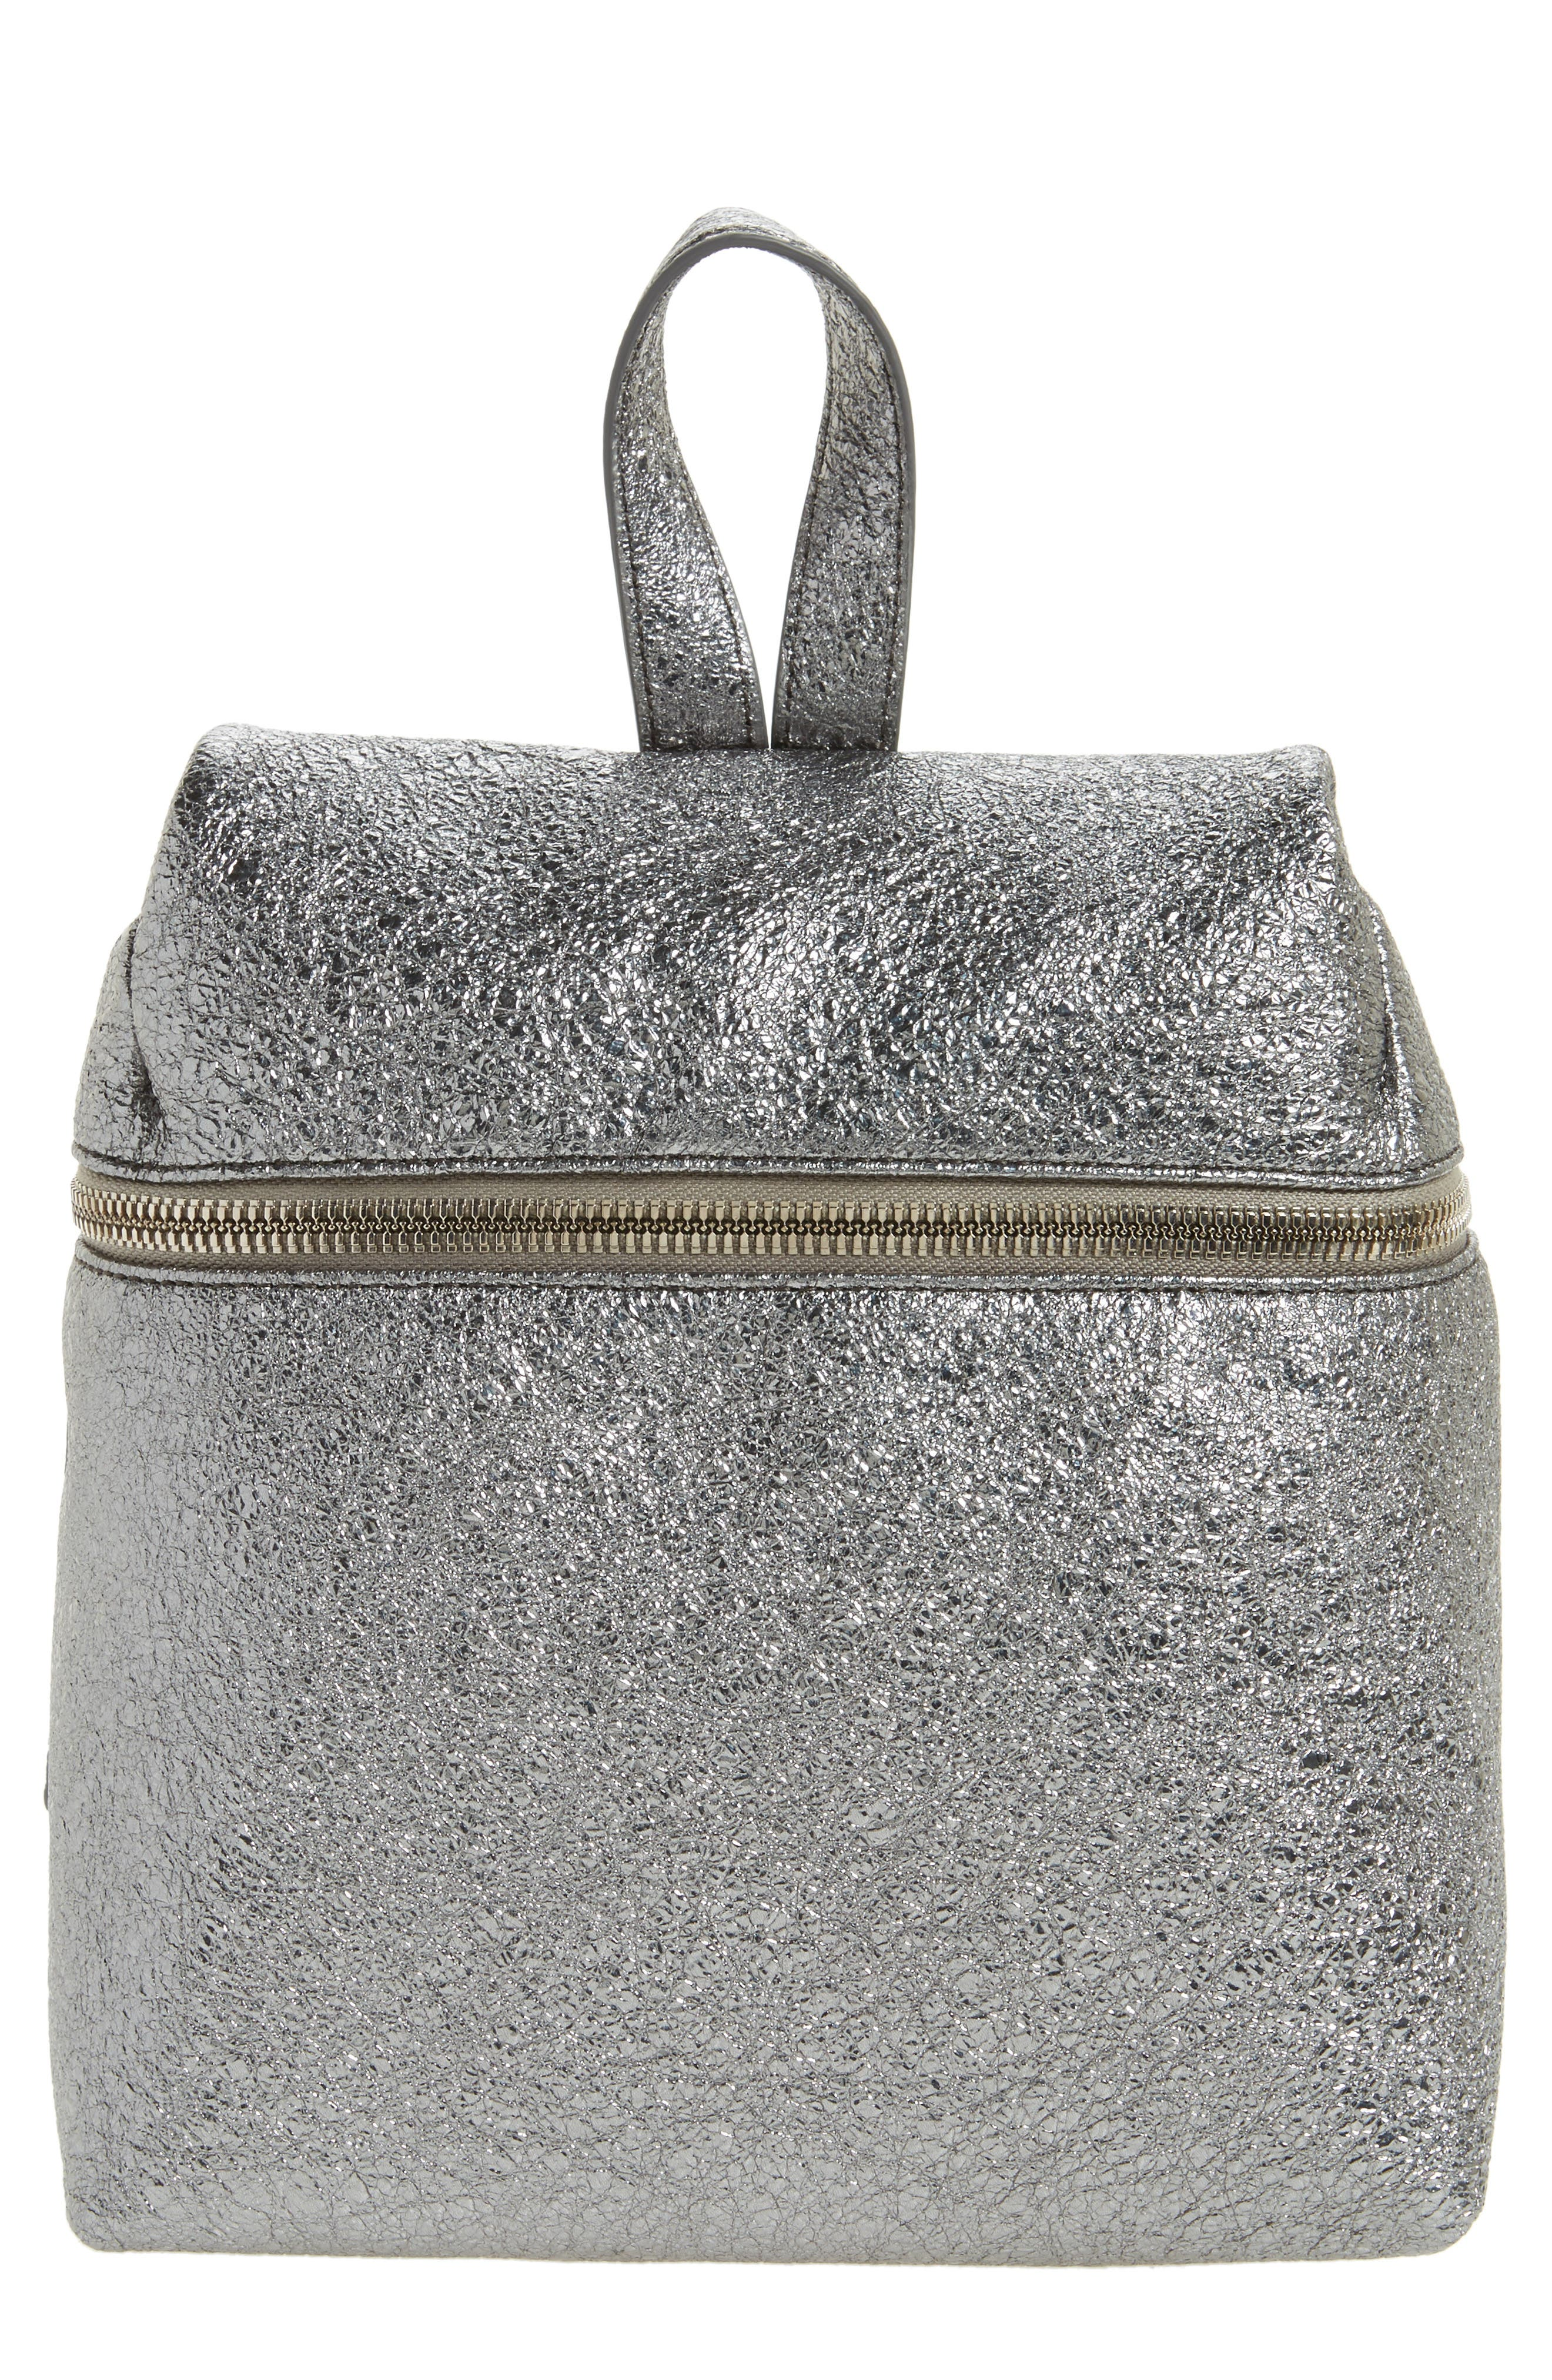 Small Crinkled Metallic Leather Backpack,                             Main thumbnail 1, color,